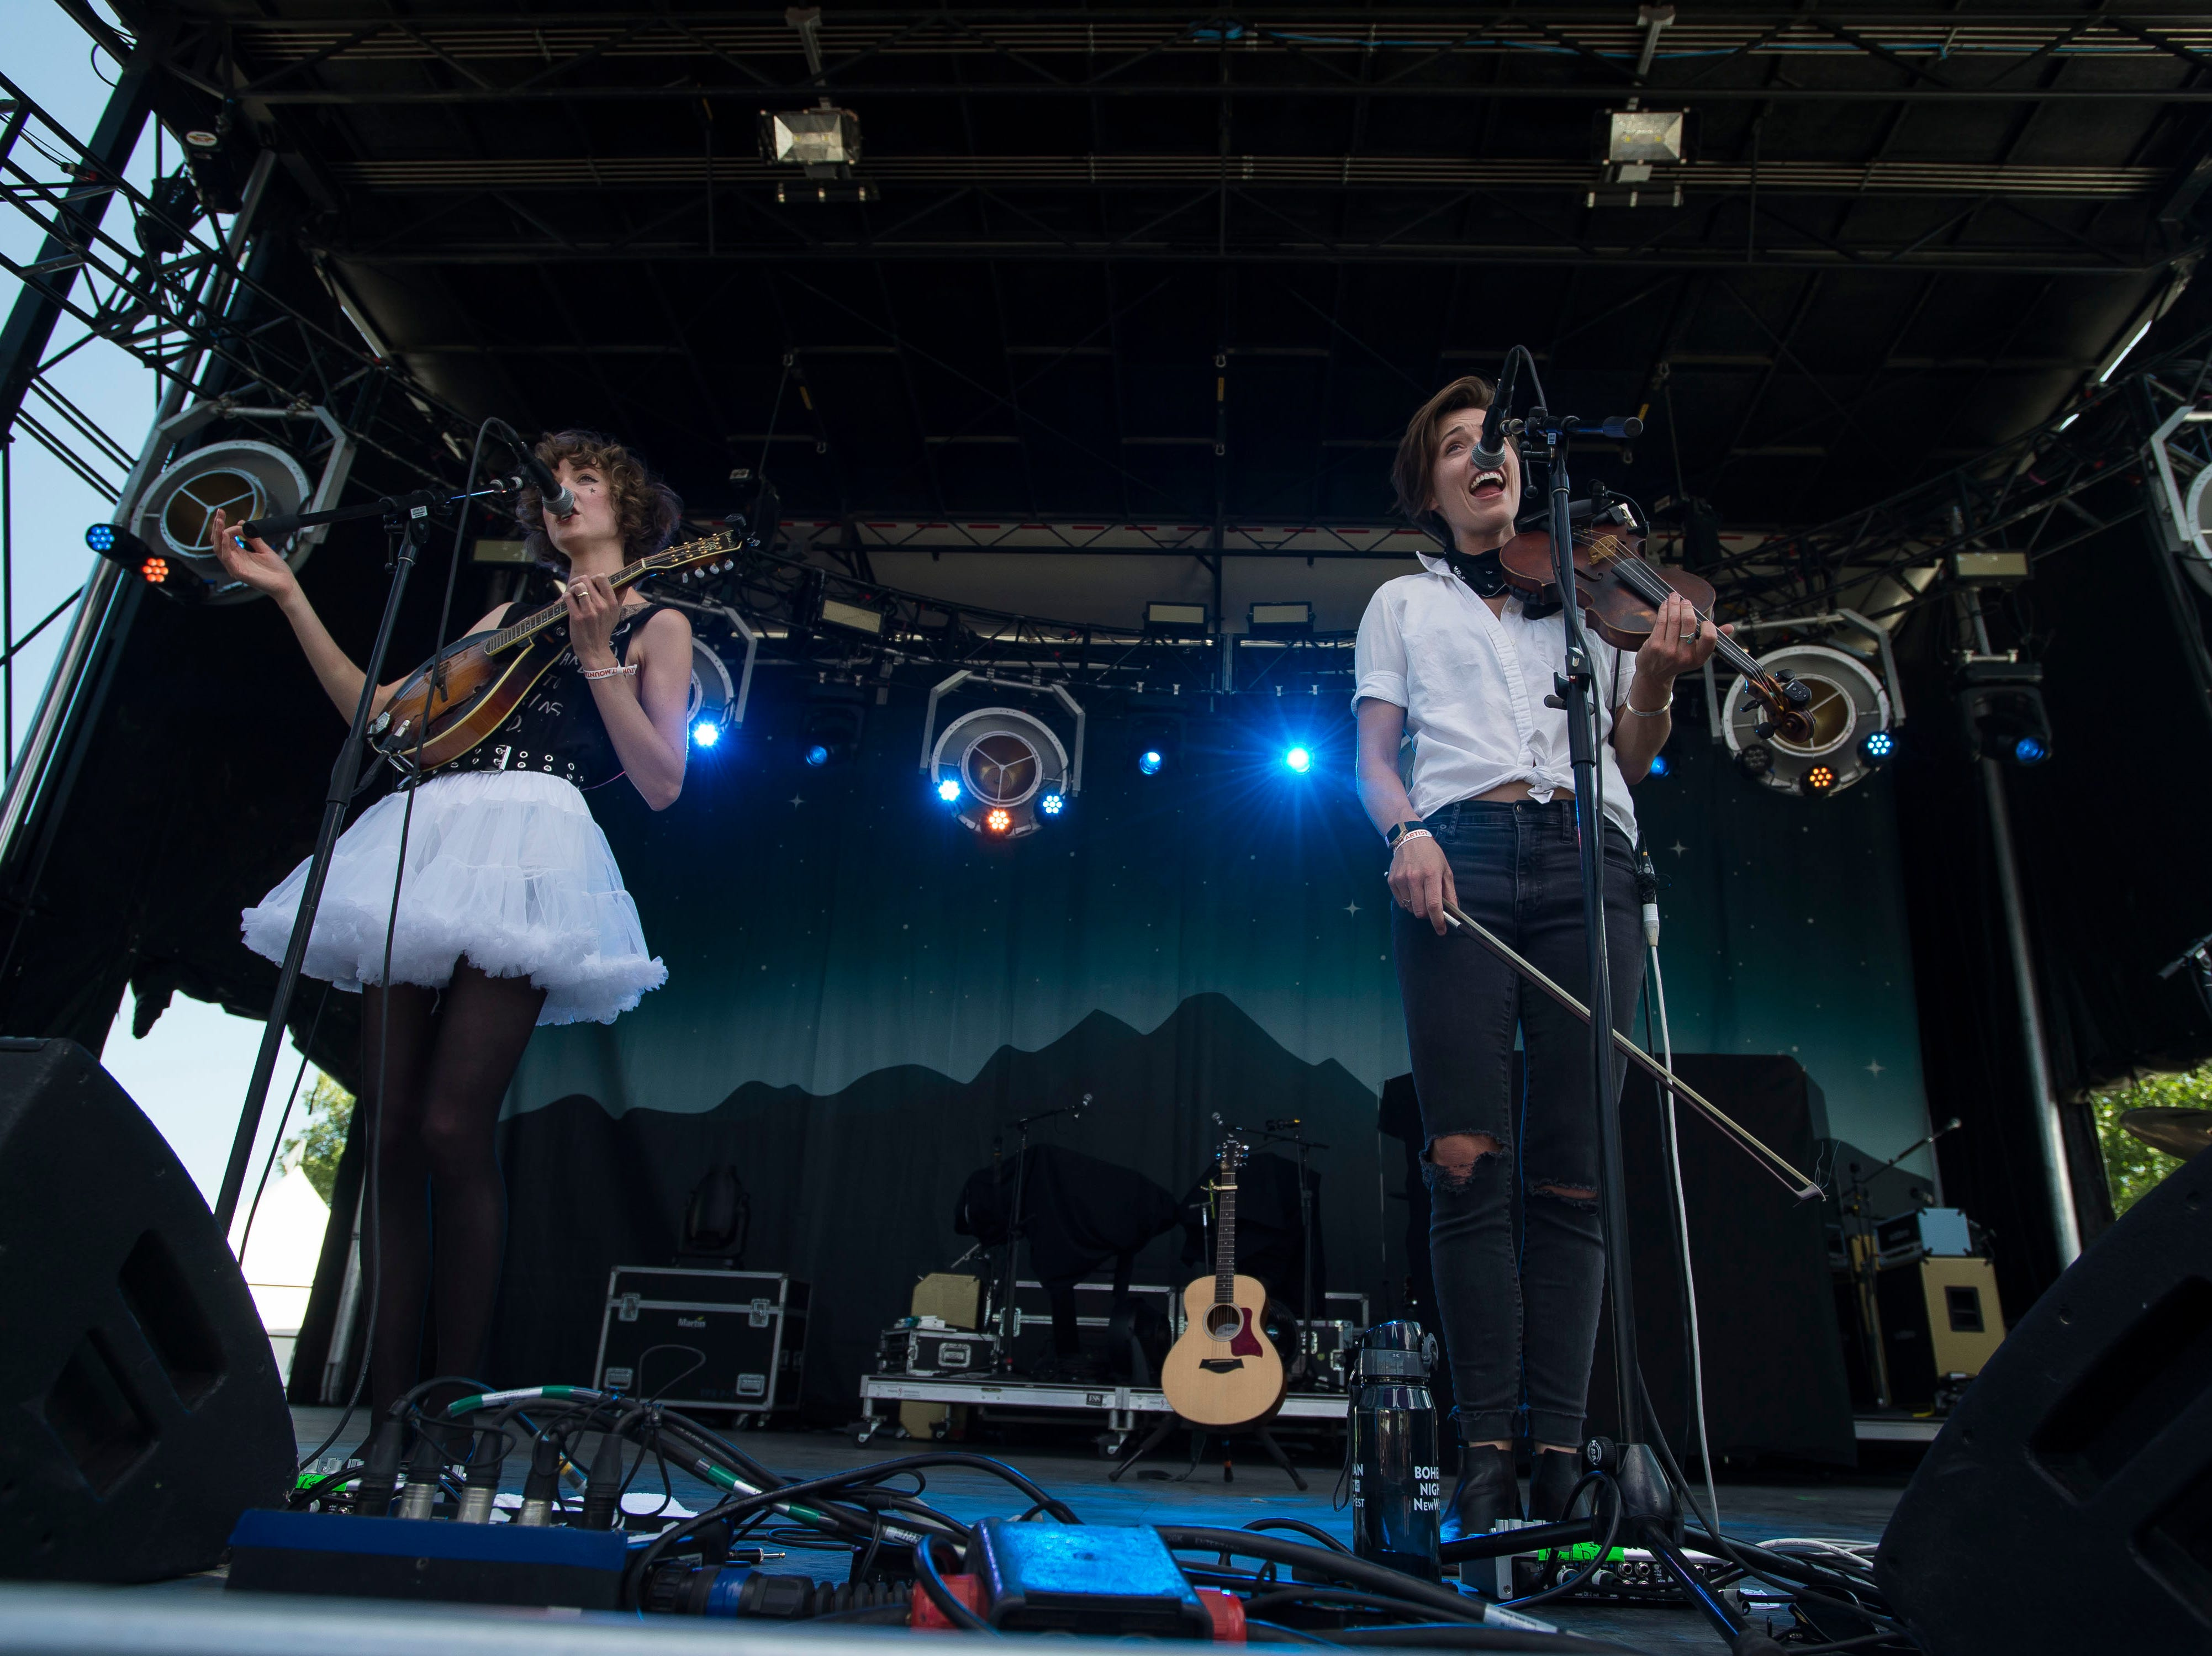 Shel, a band that began in Fort Collins and now resides in Nashville, plays the Mountain Avenue stage during the second day of Bohemian Nights at NewWestFest on Saturday, Aug. 11, 2018, in Old Town Fort Collins, Colo.